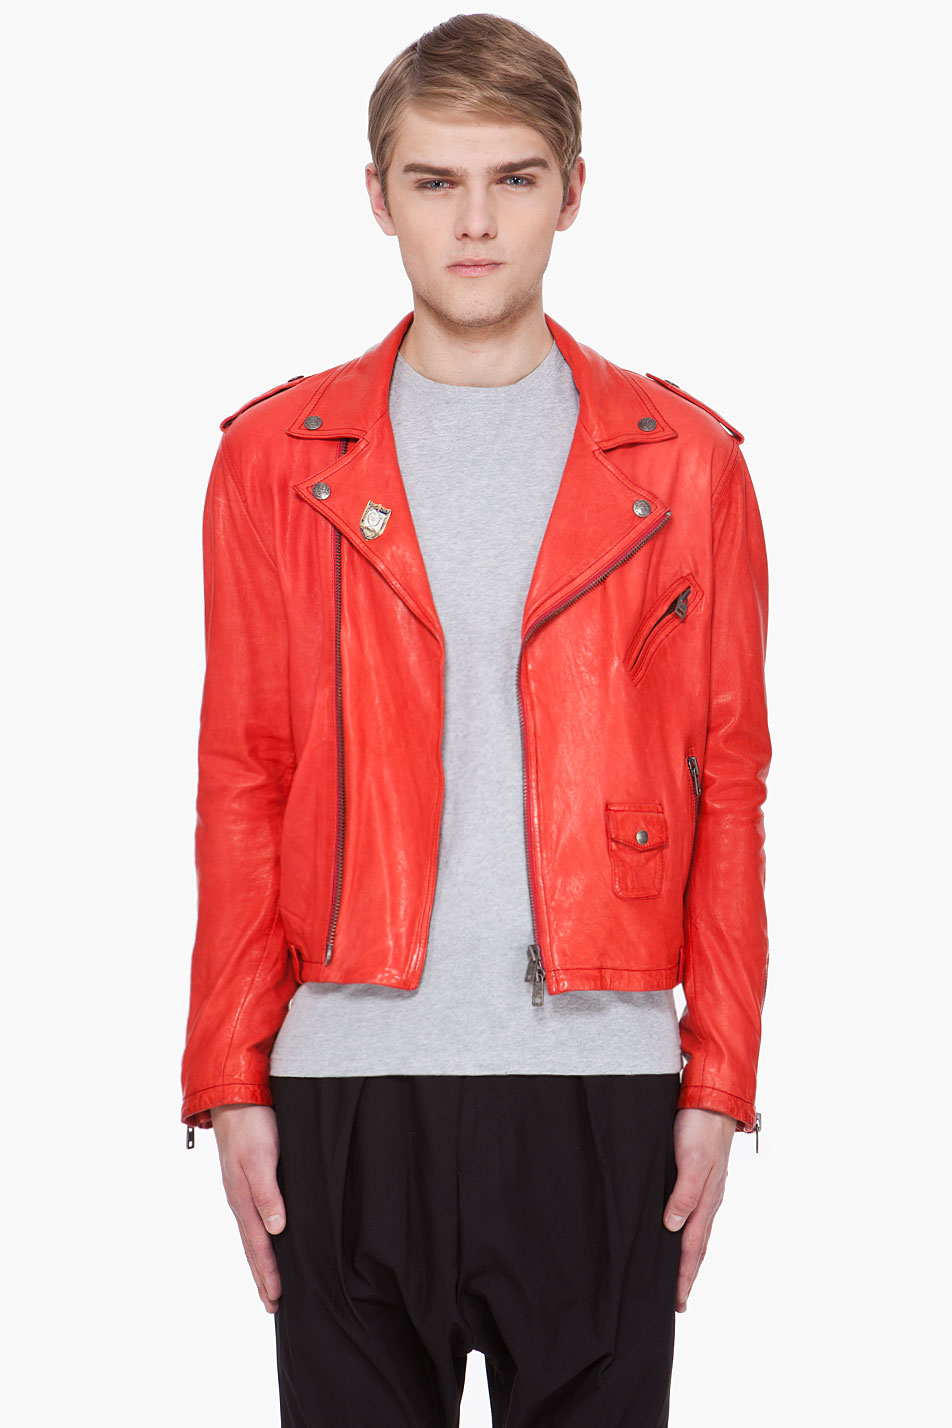 Lyst Mcq Red Leather Jacket In Red For Men